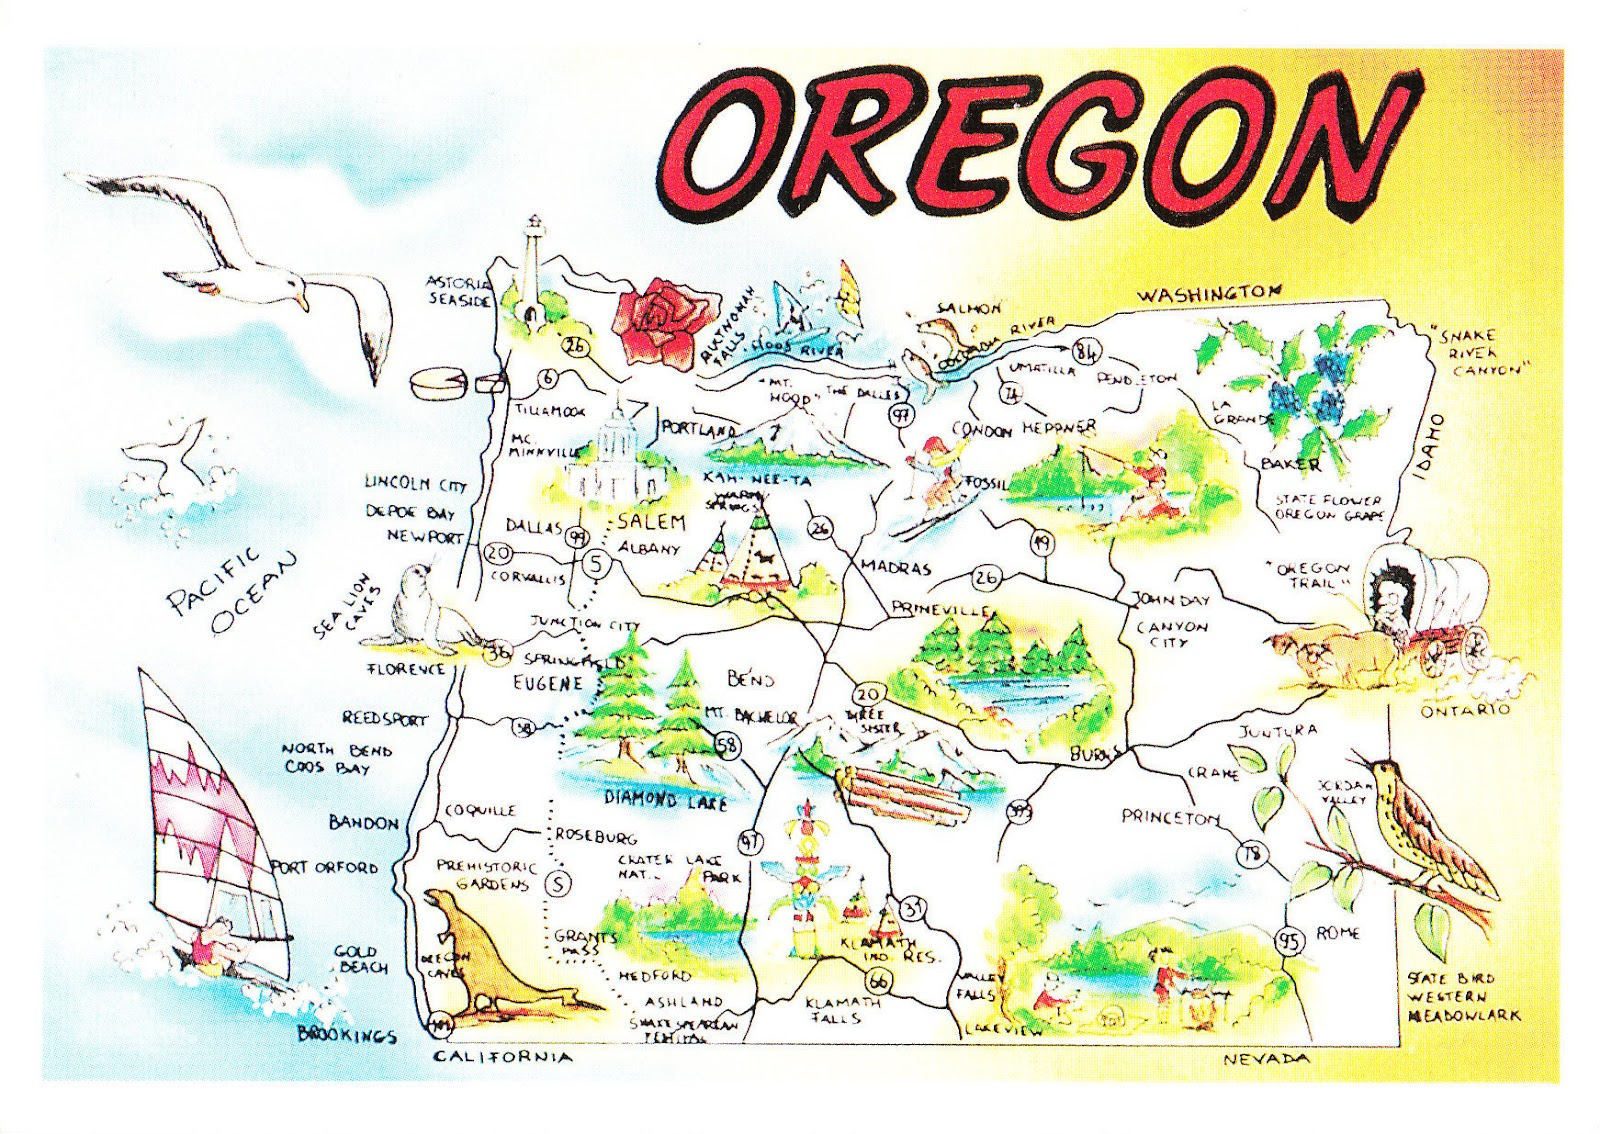 oregon is a state in the pacific northwest region of the united states it is located on the pacific coast with washington to the north california to the